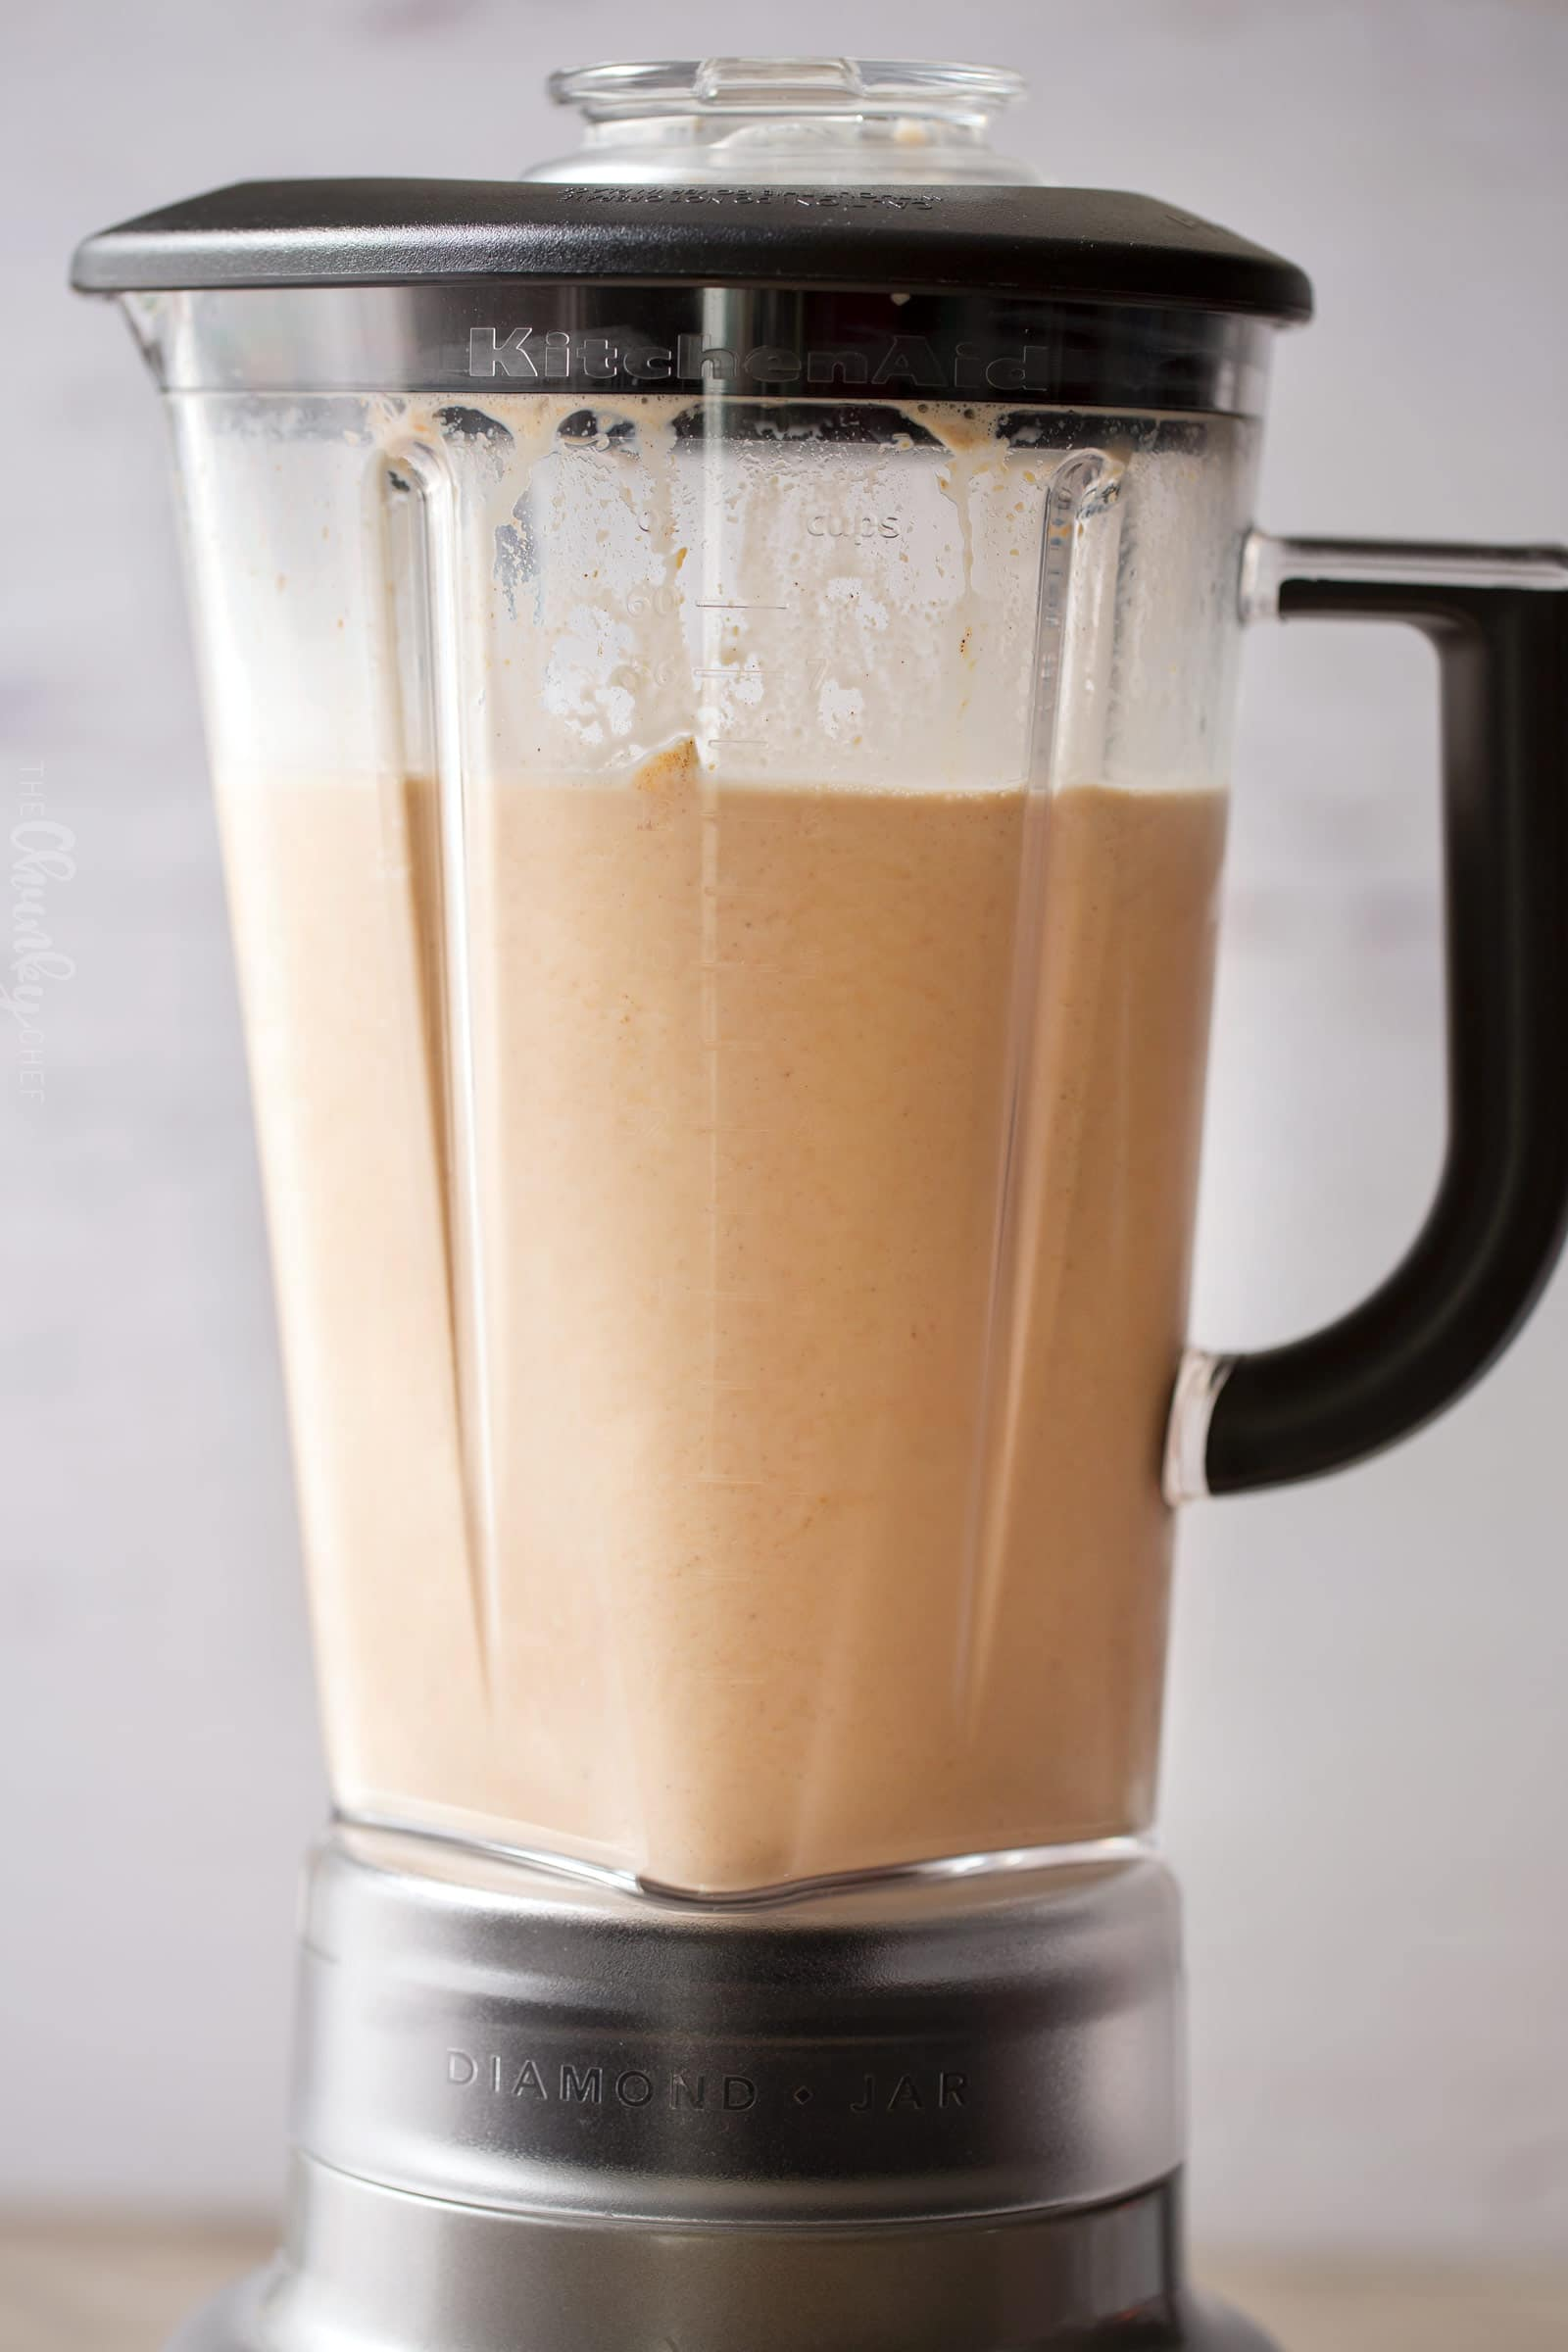 Pumpkin Spice Latte Milkshake | Made with all the great pumpkin spice latte flavors, this milkshake hits both the Fall and Summer tastebuds, and will soon be your new favorite way to enjoy the pumpkin spice flavor! | https://www.thechunkychef.com | #milkshake #pumpkin #pumpkinspice #latte #frozen